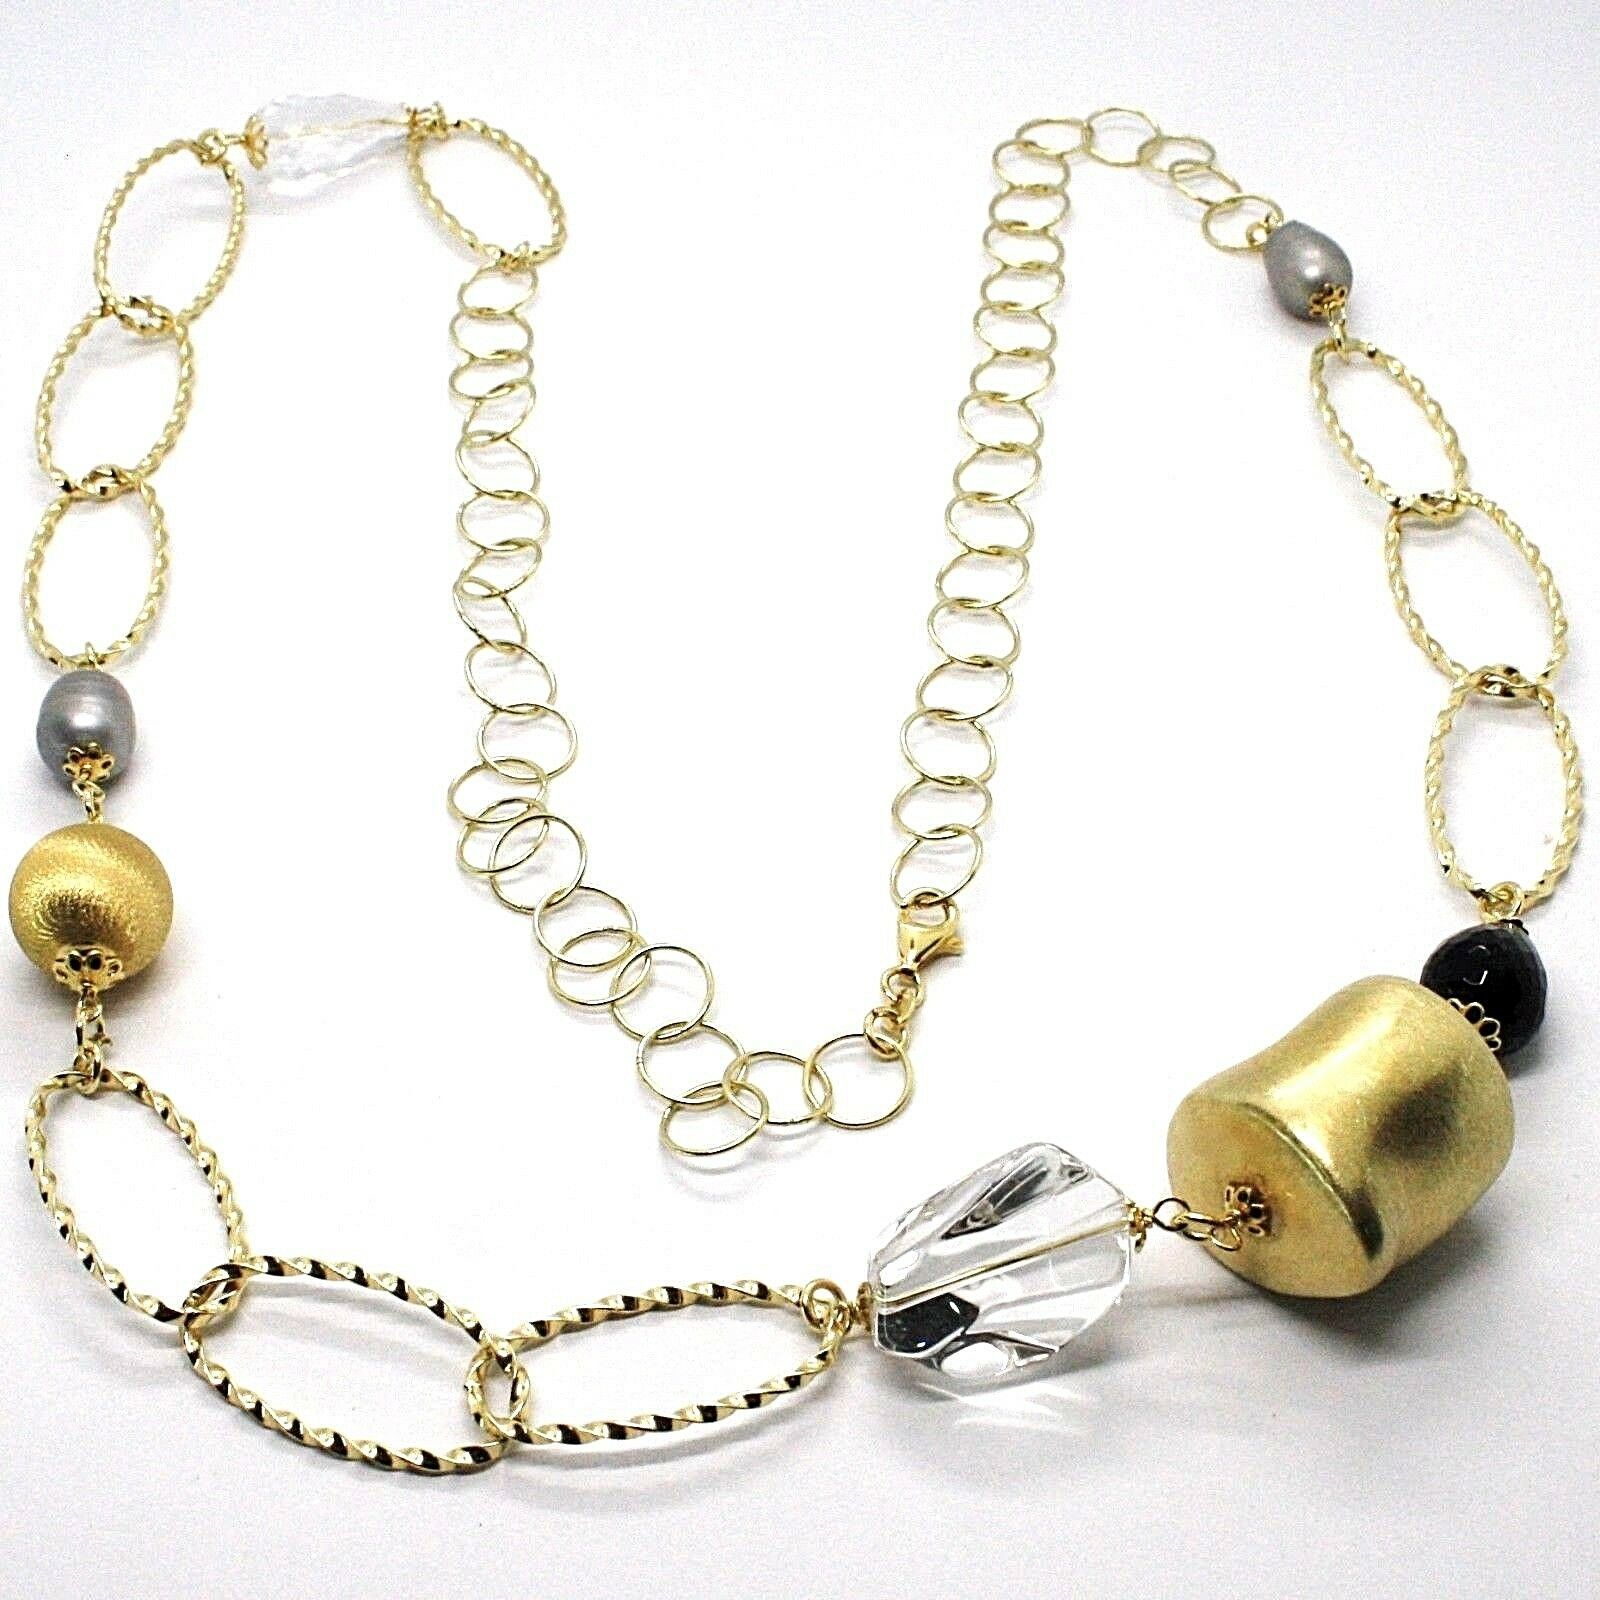 Necklace Silver 925, Yellow, Onyx, Pearls Grey, Ovals Twisted, 37 3/8in